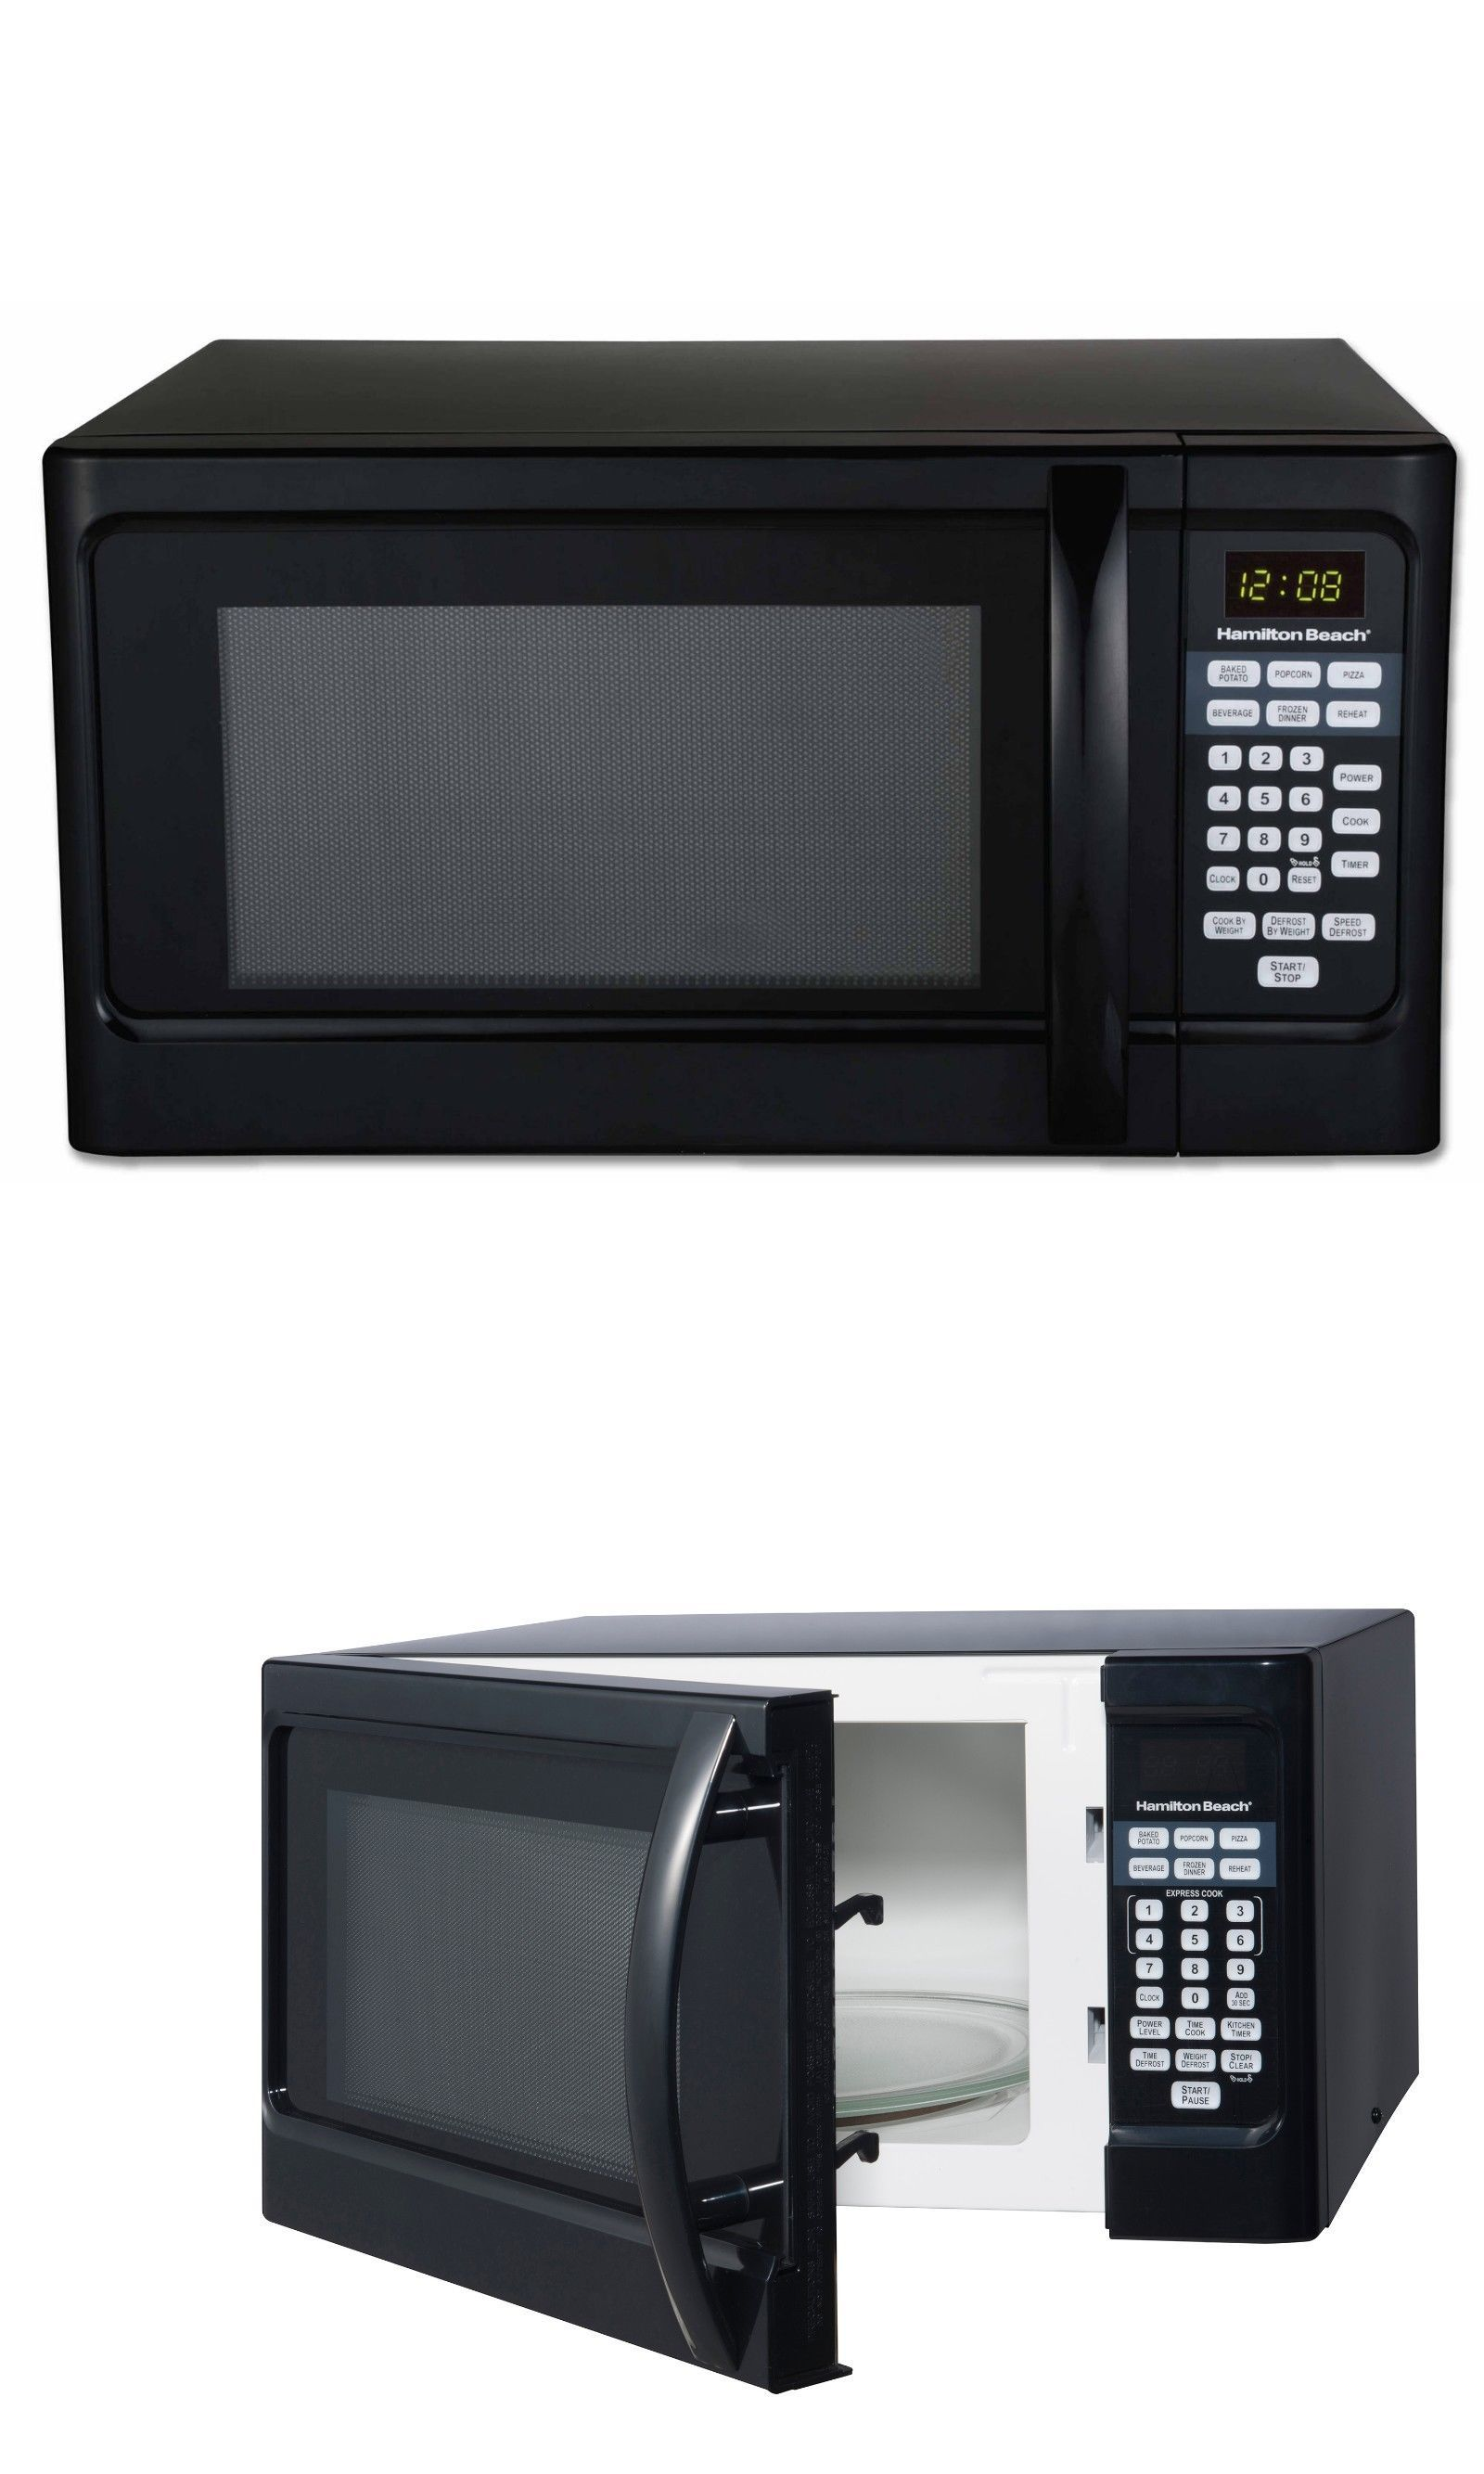 Pin On Microwave Ovens 150140